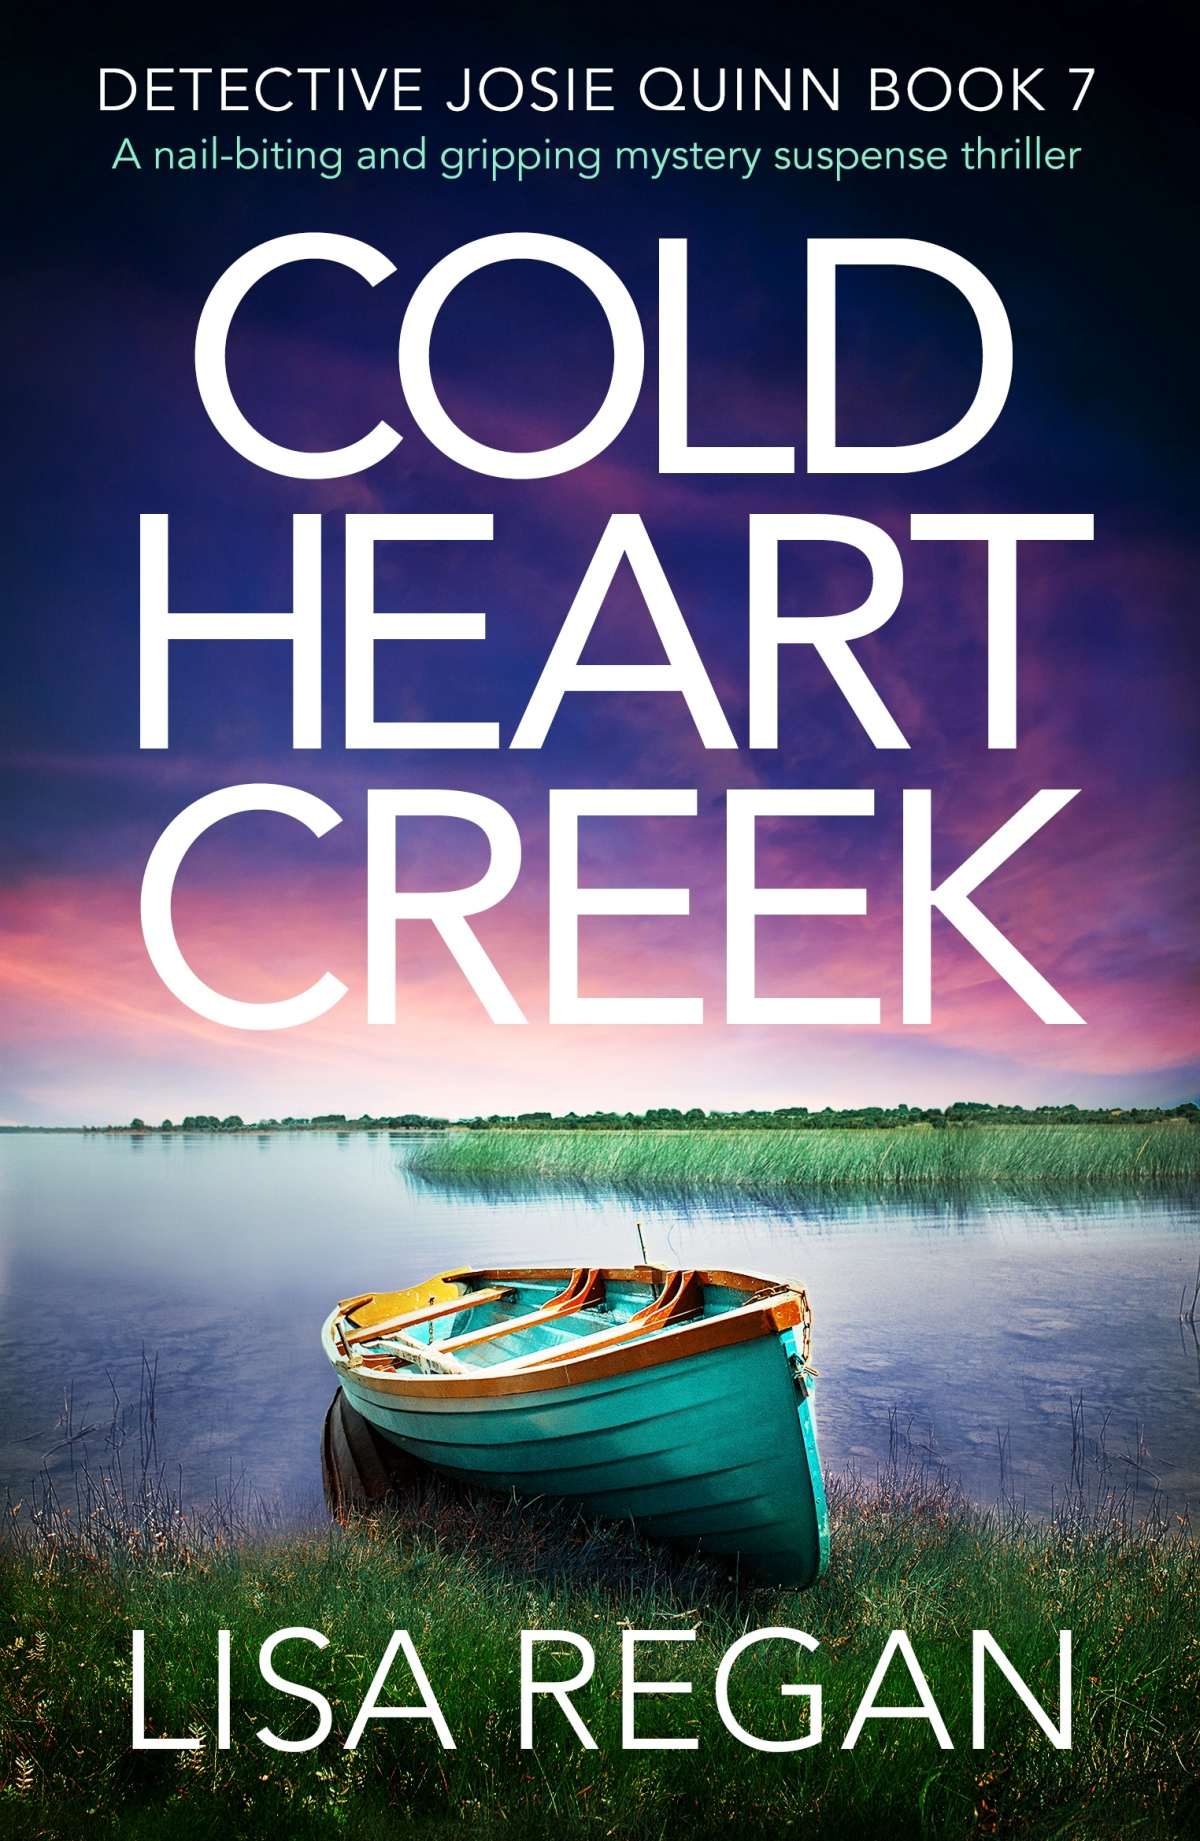 COLD HEART CREEK. Lisa Regan